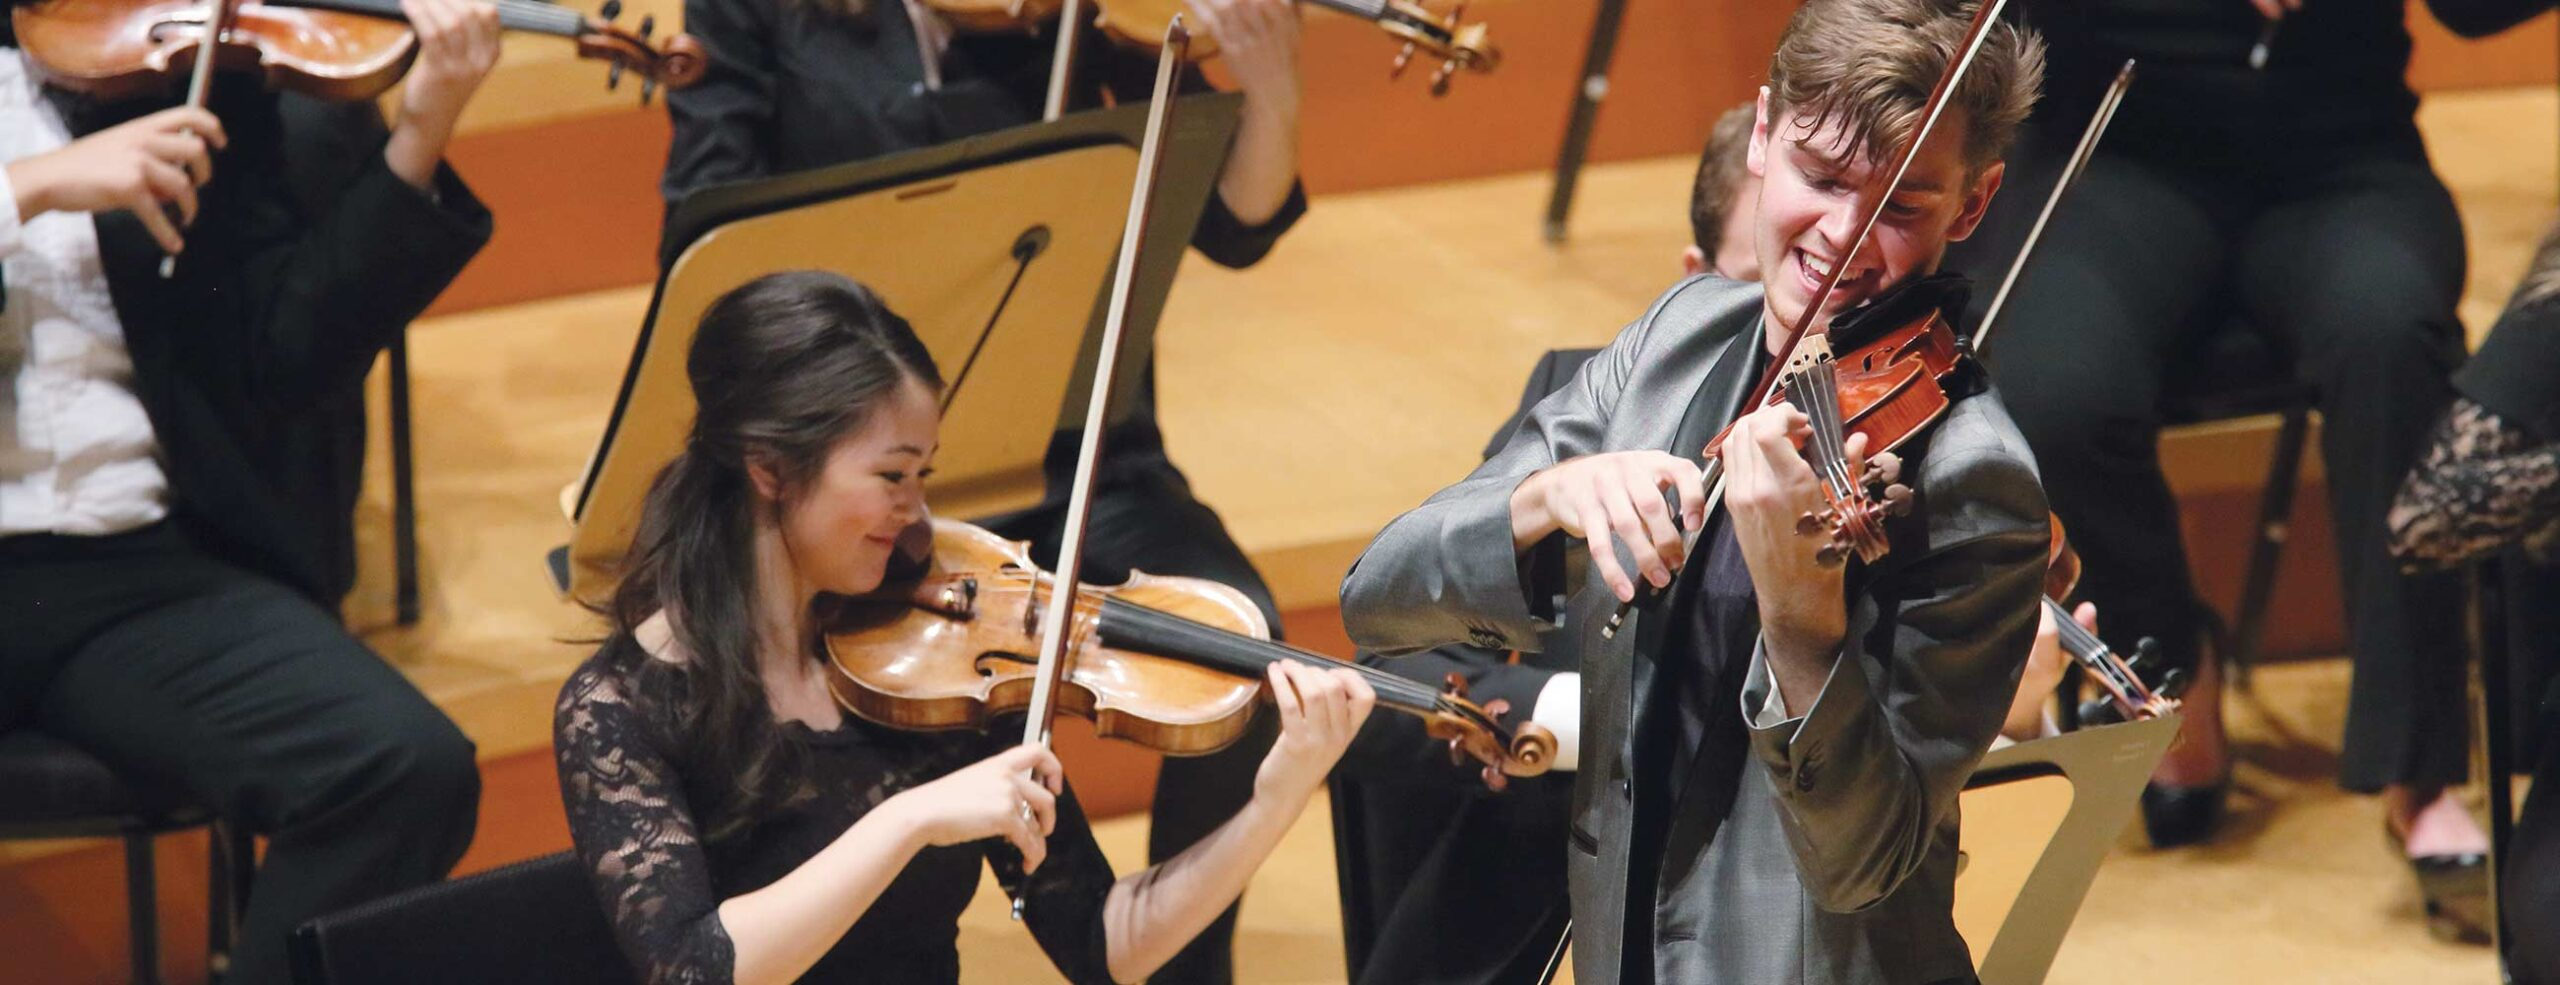 Violinists Simone Porter and Blake Pouliot performing on stage with orchestra